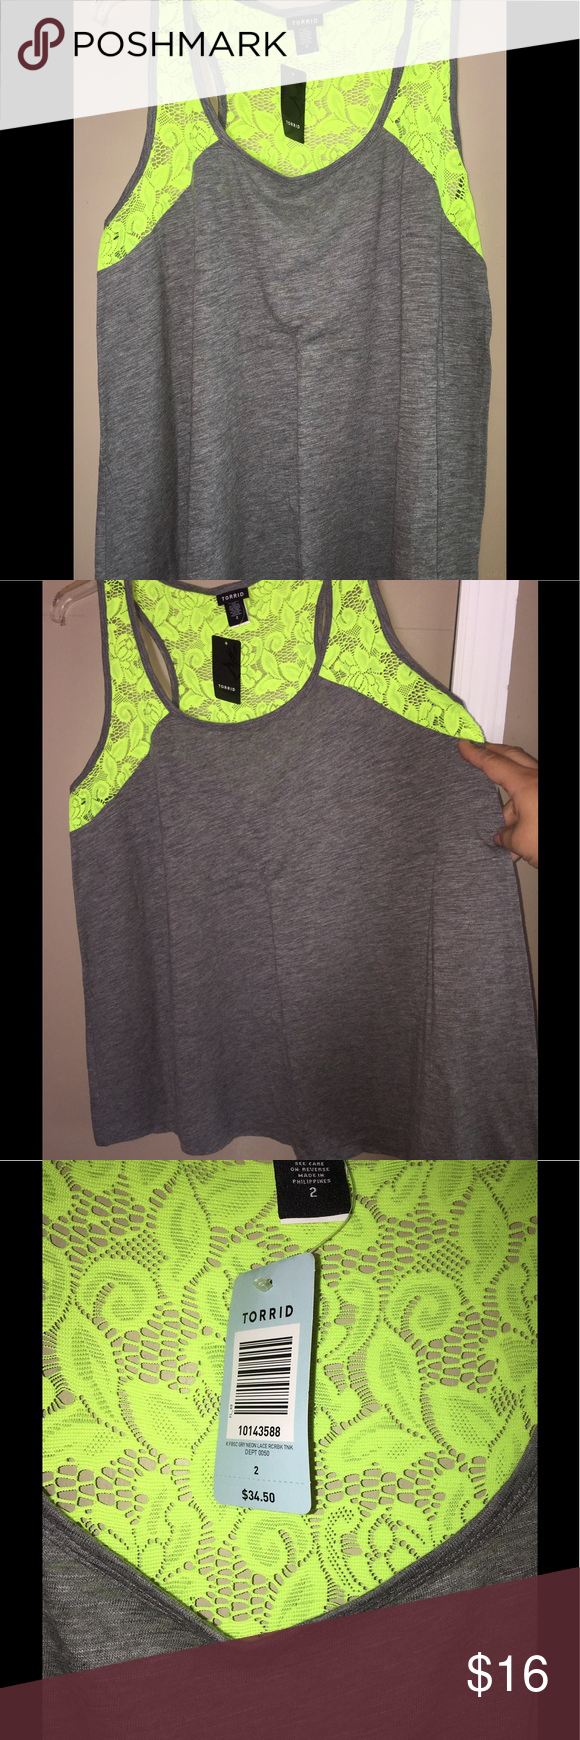 ⚡️NWT Torrid Neon Green Lace Top ⚡️ NWT Racerback tank with bright neon green lace. The gray is a Slub material so it's very breathable and light for summer months. This top will definitely make heads turn ‼️ torrid Tops Tank Tops